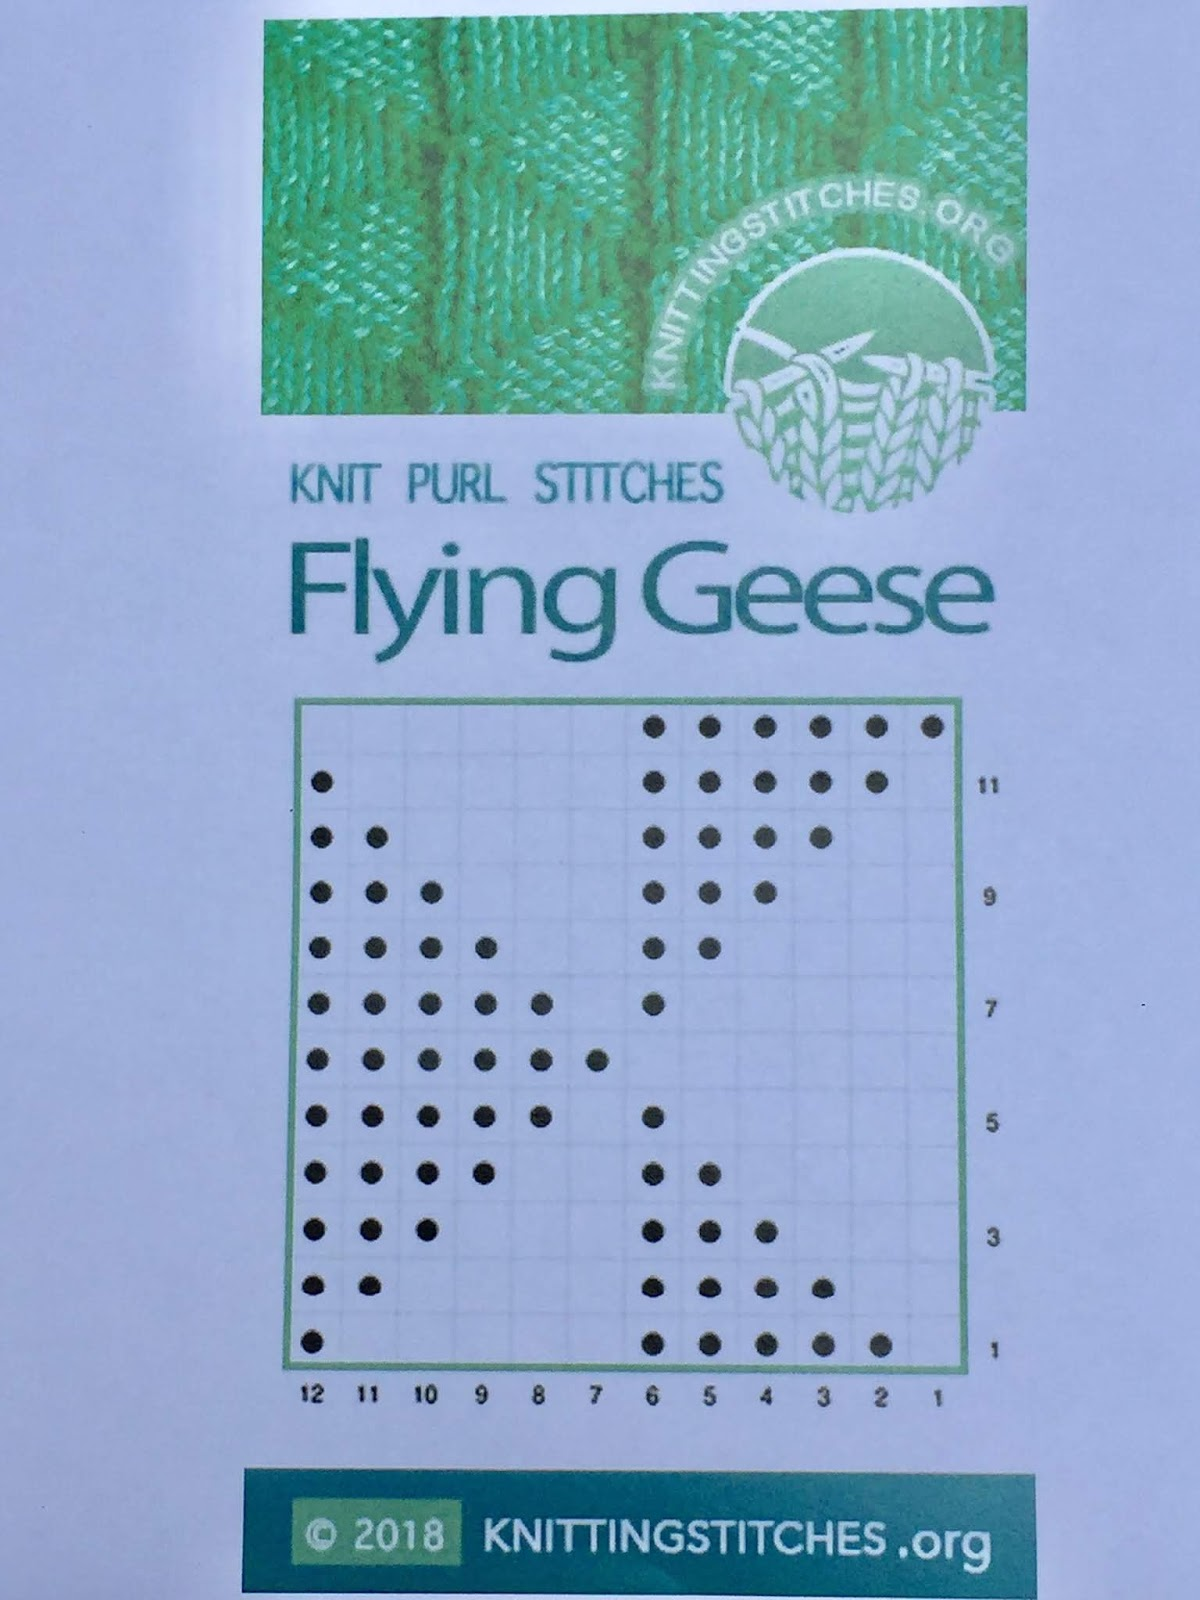 Knitting Stitches 2018 - Flying Geese stitch pattern